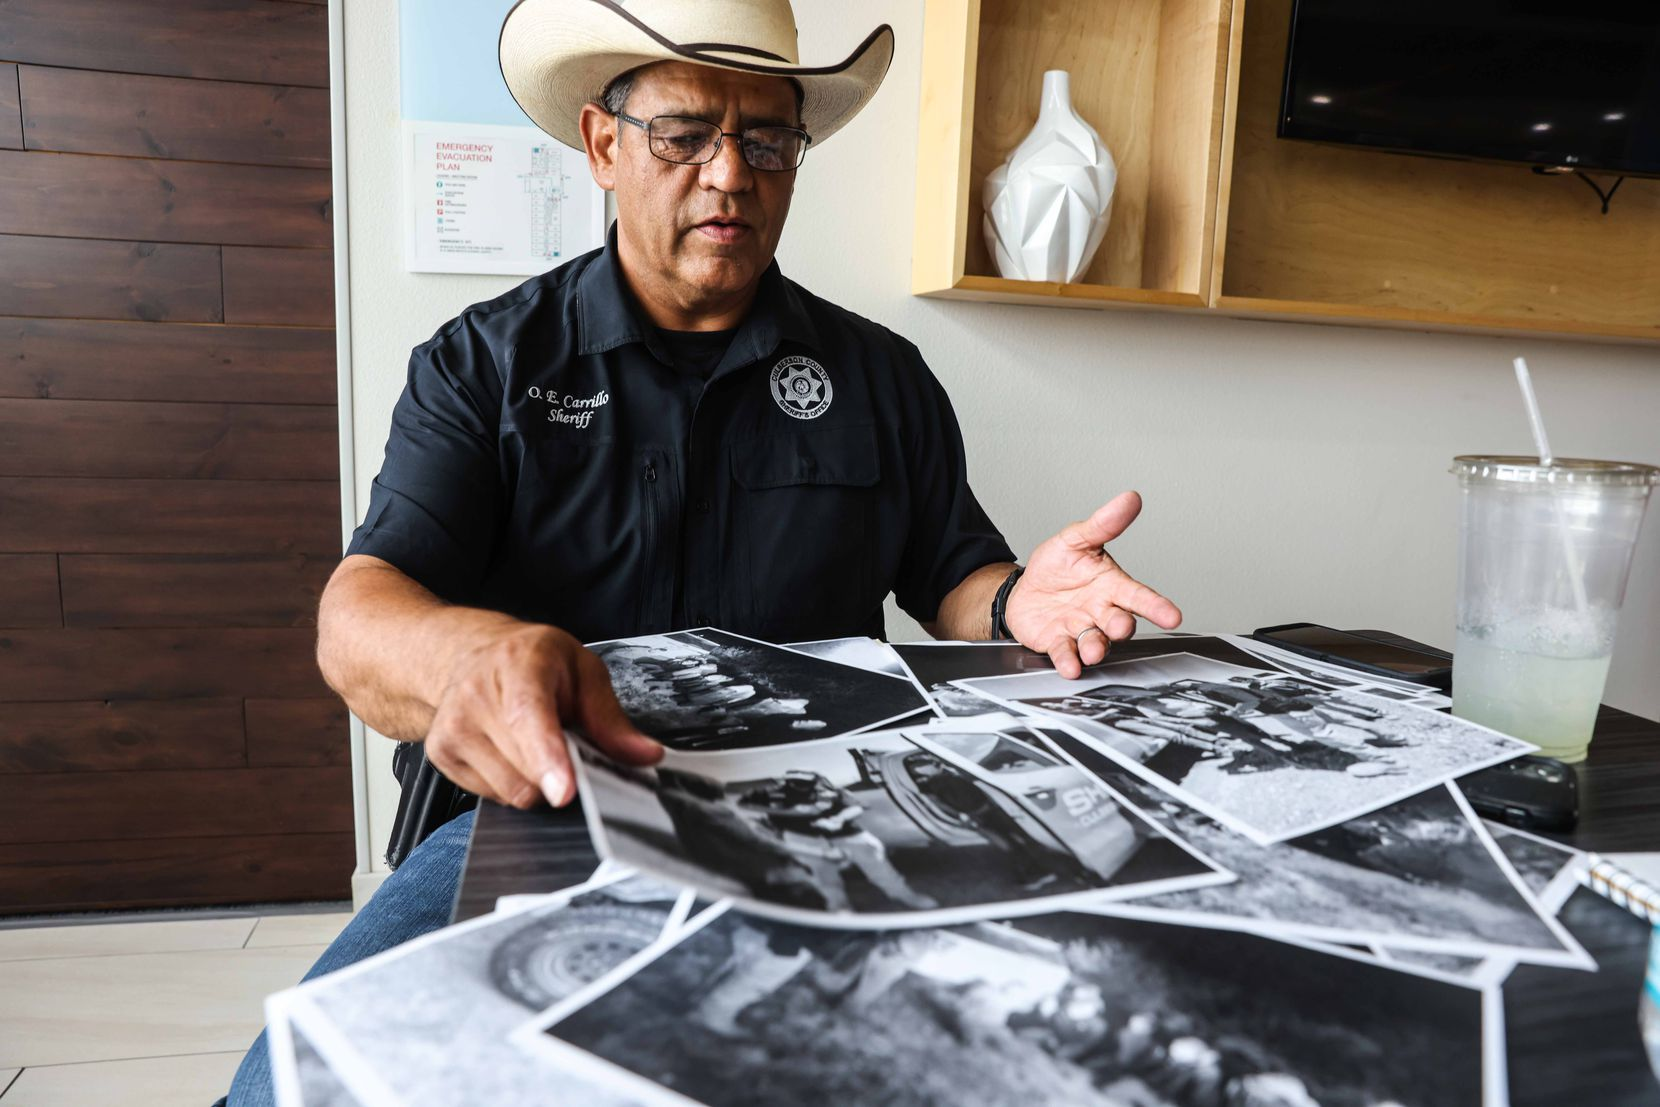 Culberson County Sheriff Oscar Carrillo shows photos of the work his office does in answering calls involving unauthorized migrants crossing the border from Mexico into the United States through the county in Van Horn.